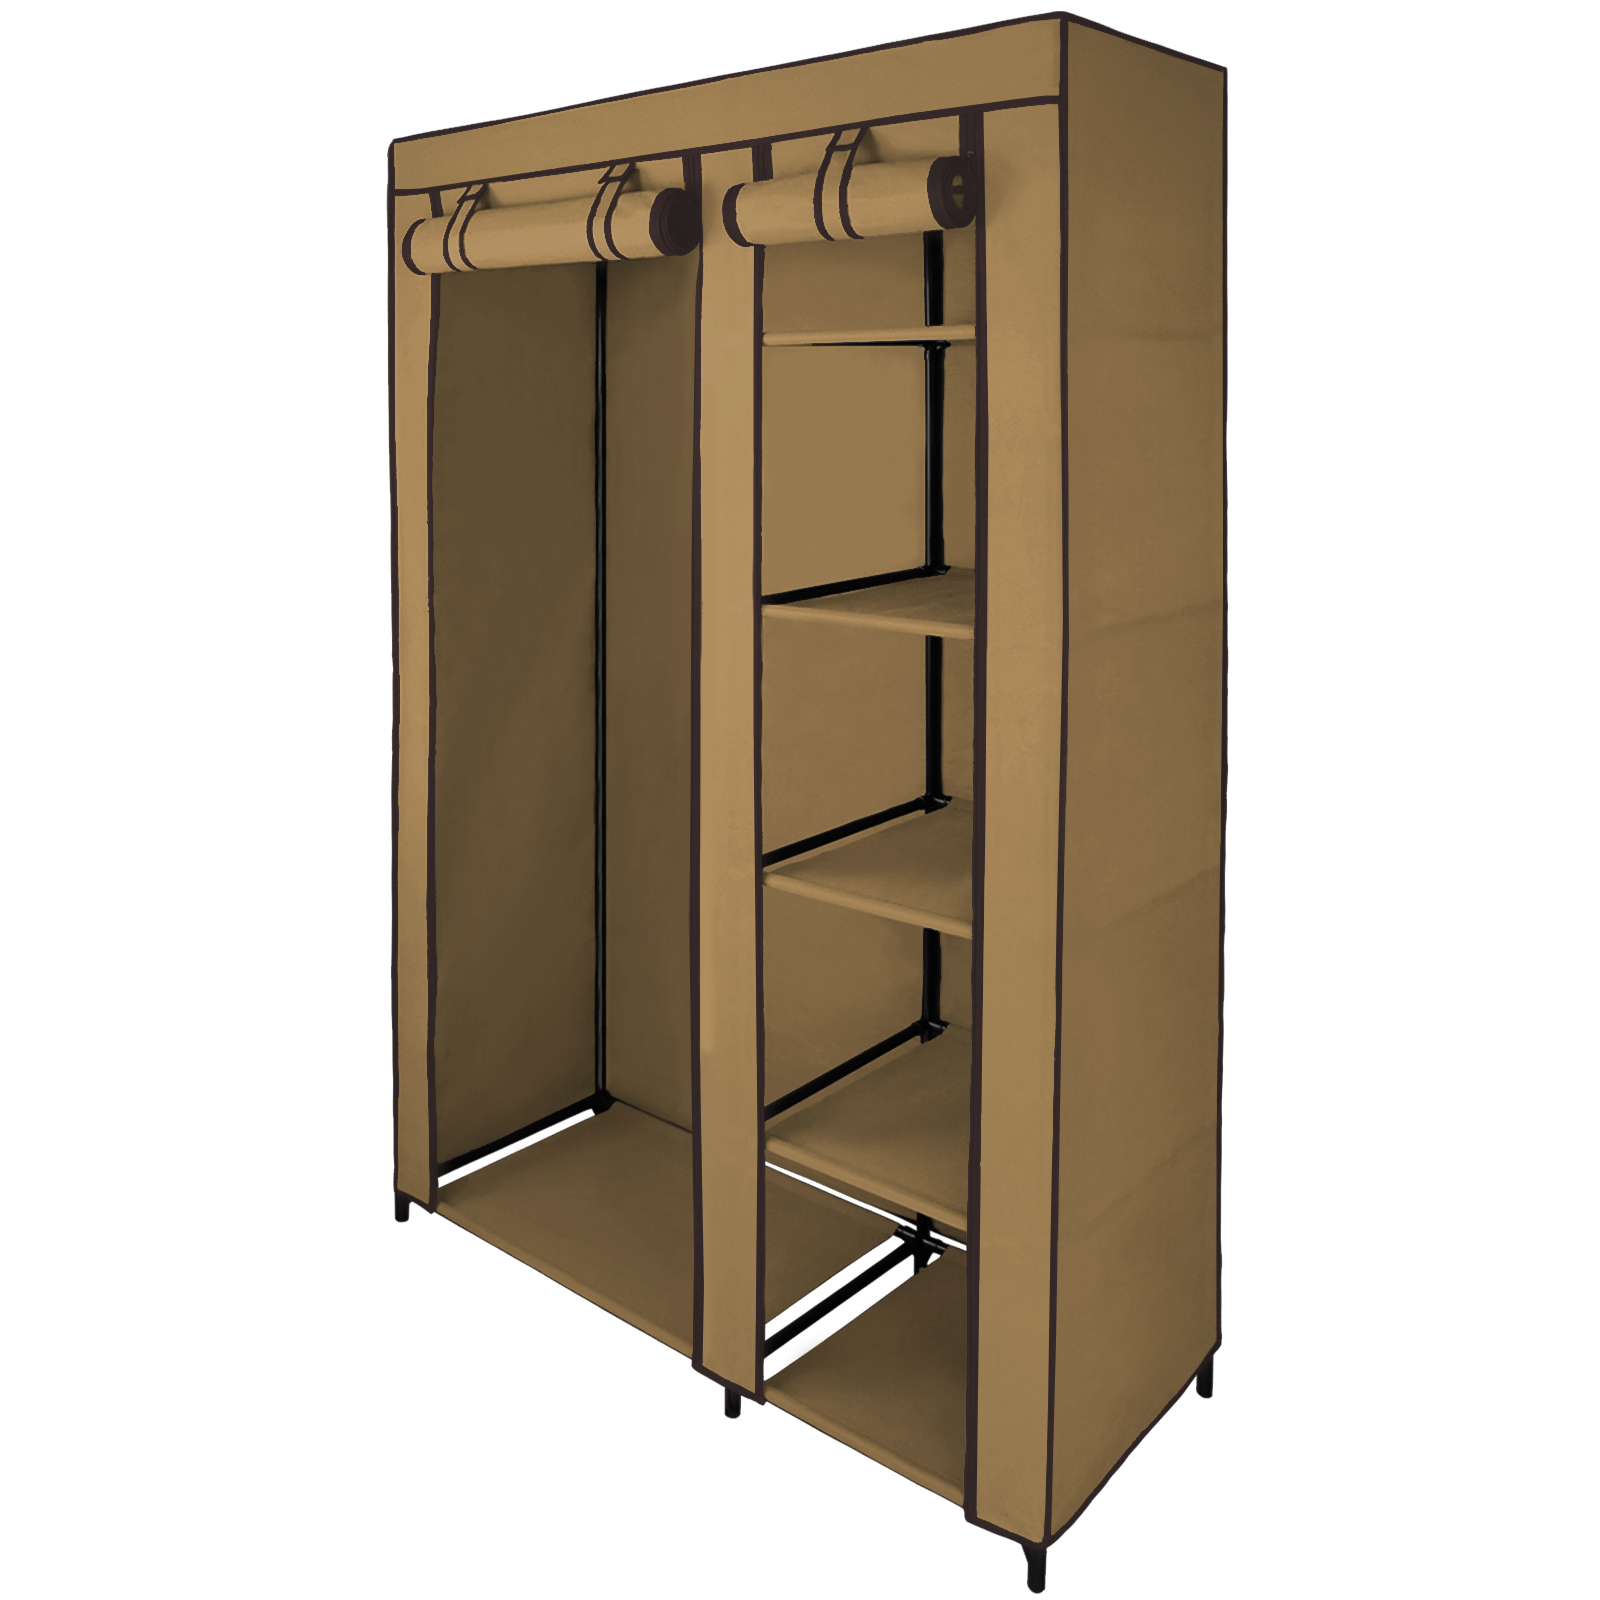 double canvas fabric wardrobe smart 110x45x175 cm with hanging rail cupboard ebay. Black Bedroom Furniture Sets. Home Design Ideas